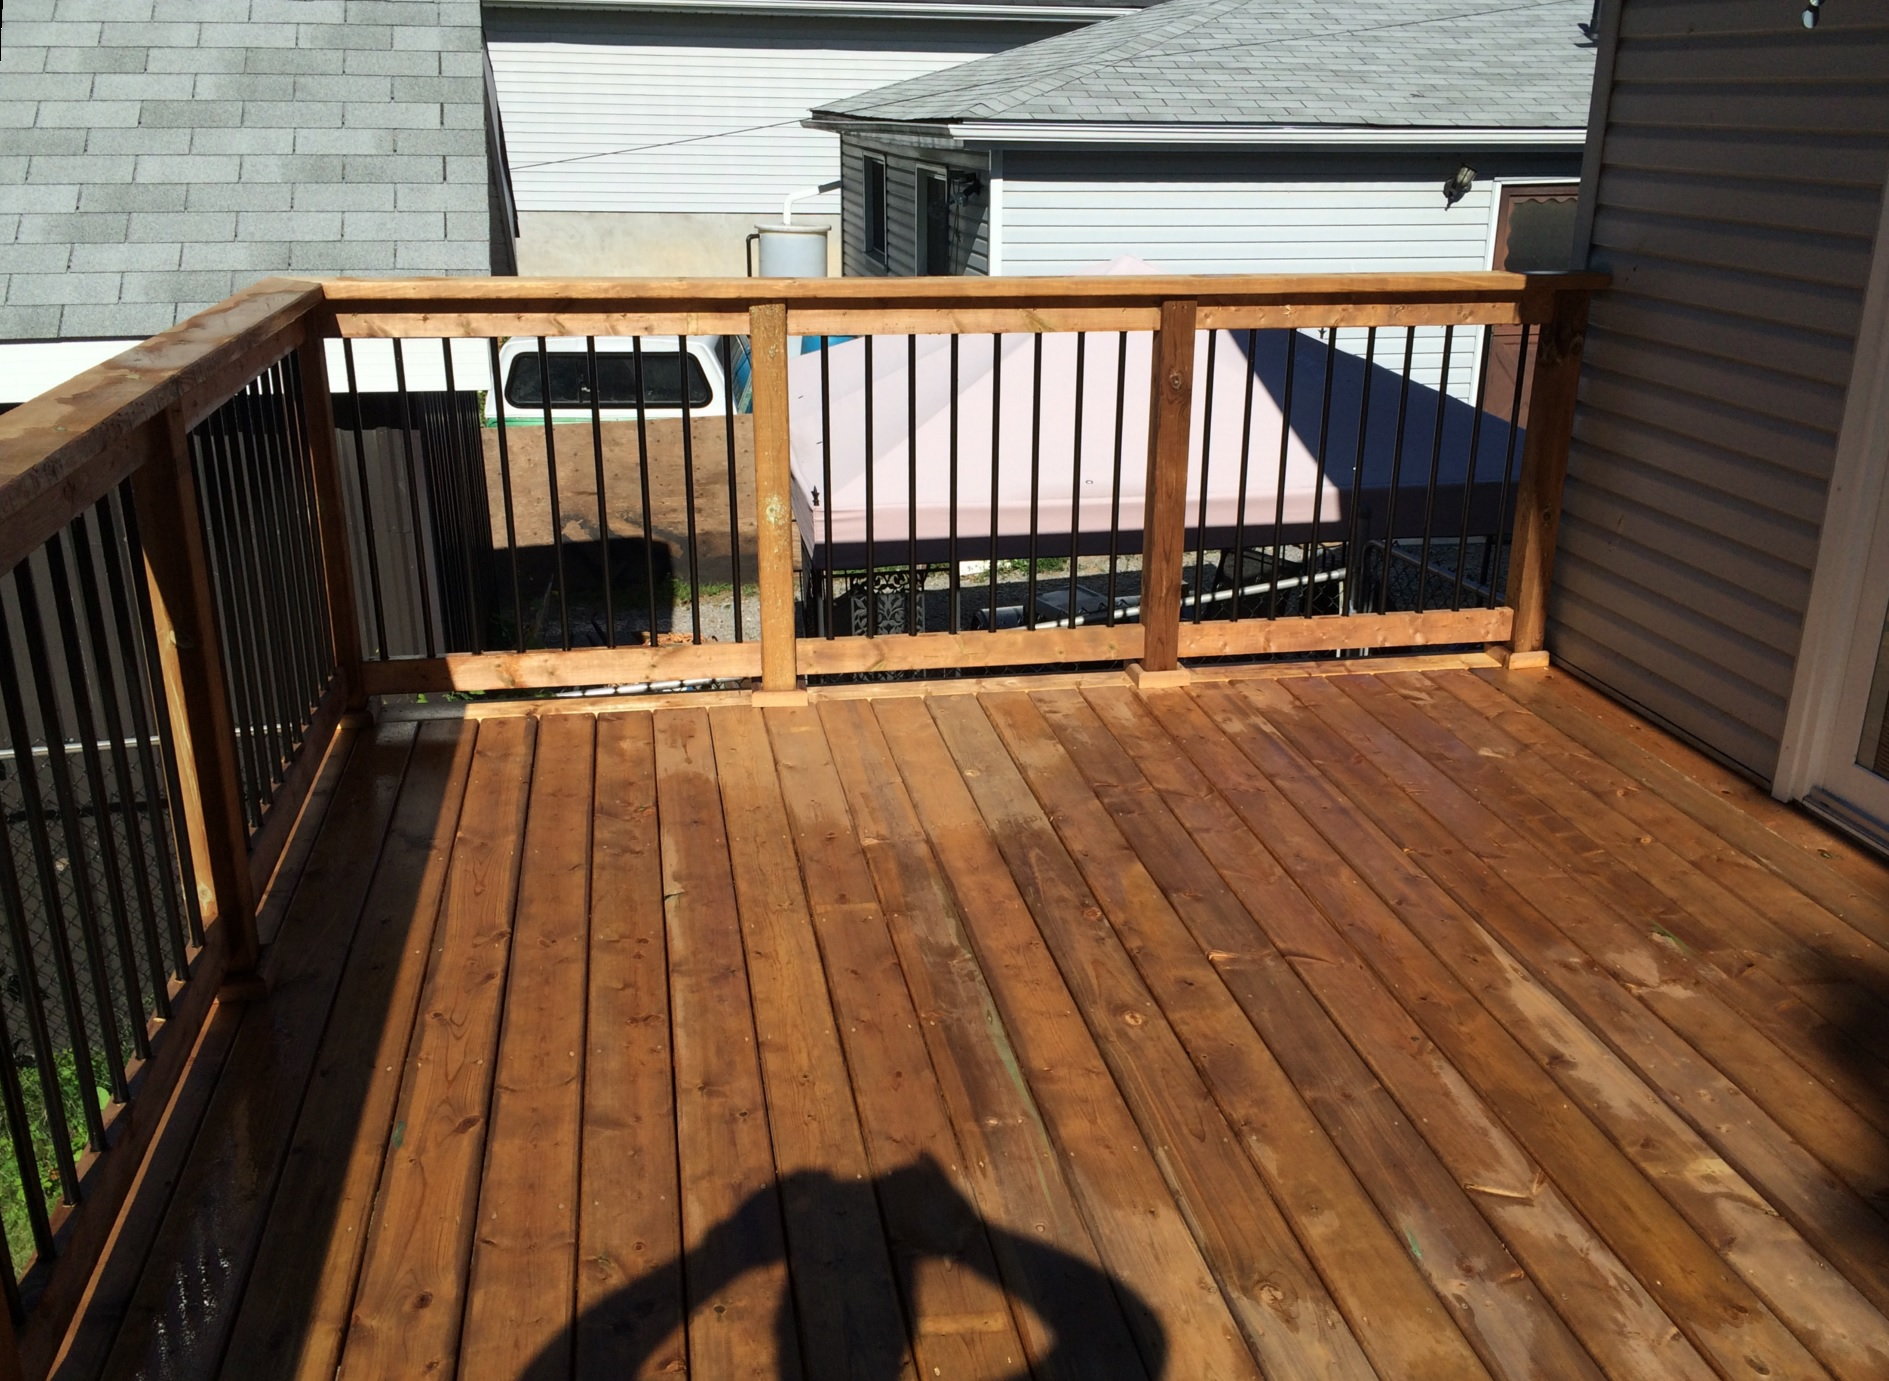 Elm Ave Deck - After Construction View from Deck Looking Right